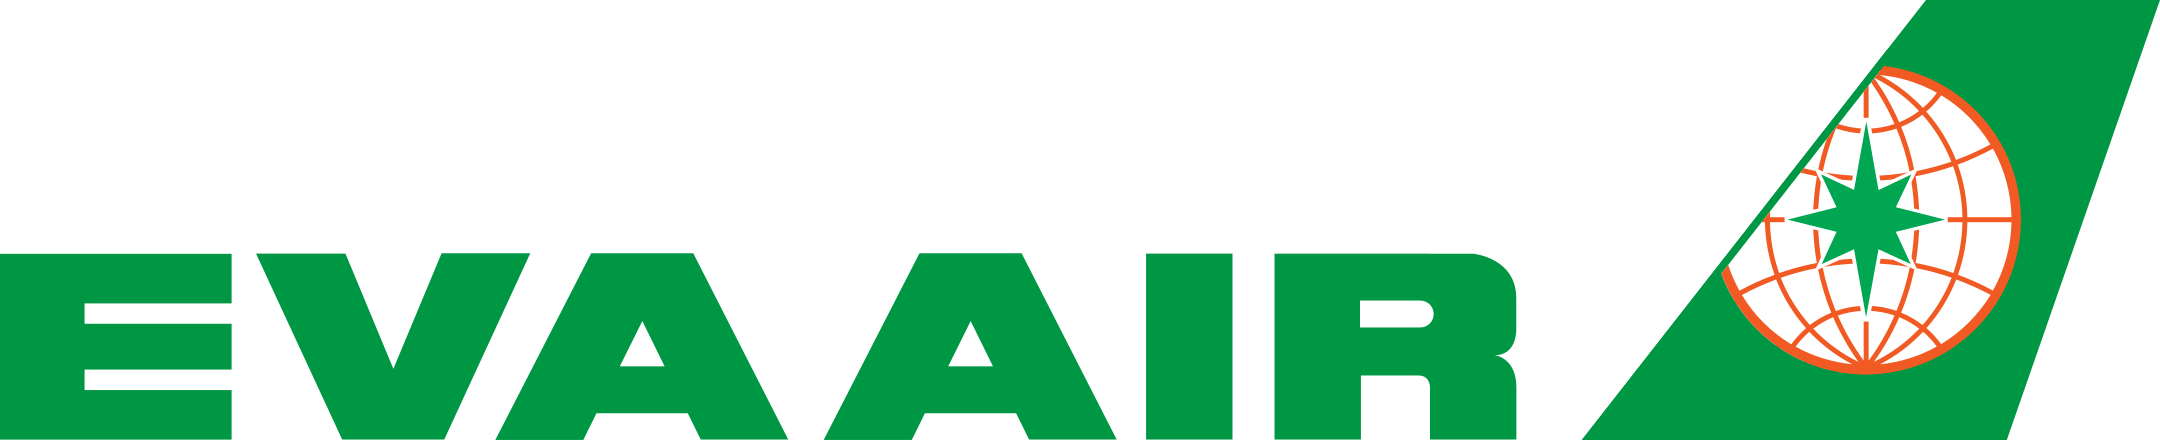 eva air logo 1 - EVA Air Logo